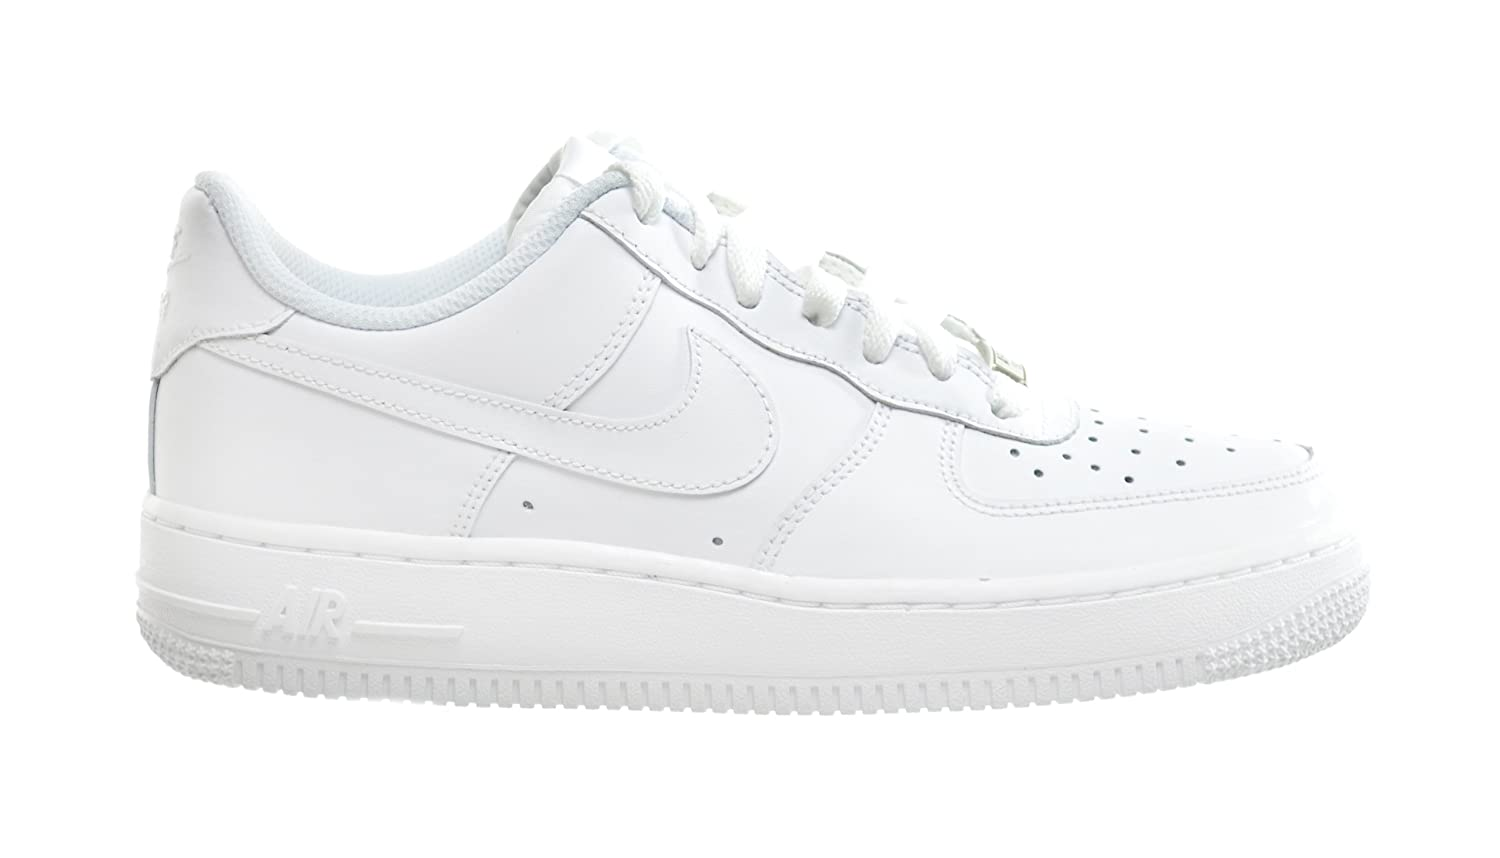 buy online 03fef 2531b ... coupon code for nike air force 1 low black youths trainers 39 eu pnyhe  dc4e3 e7b0a